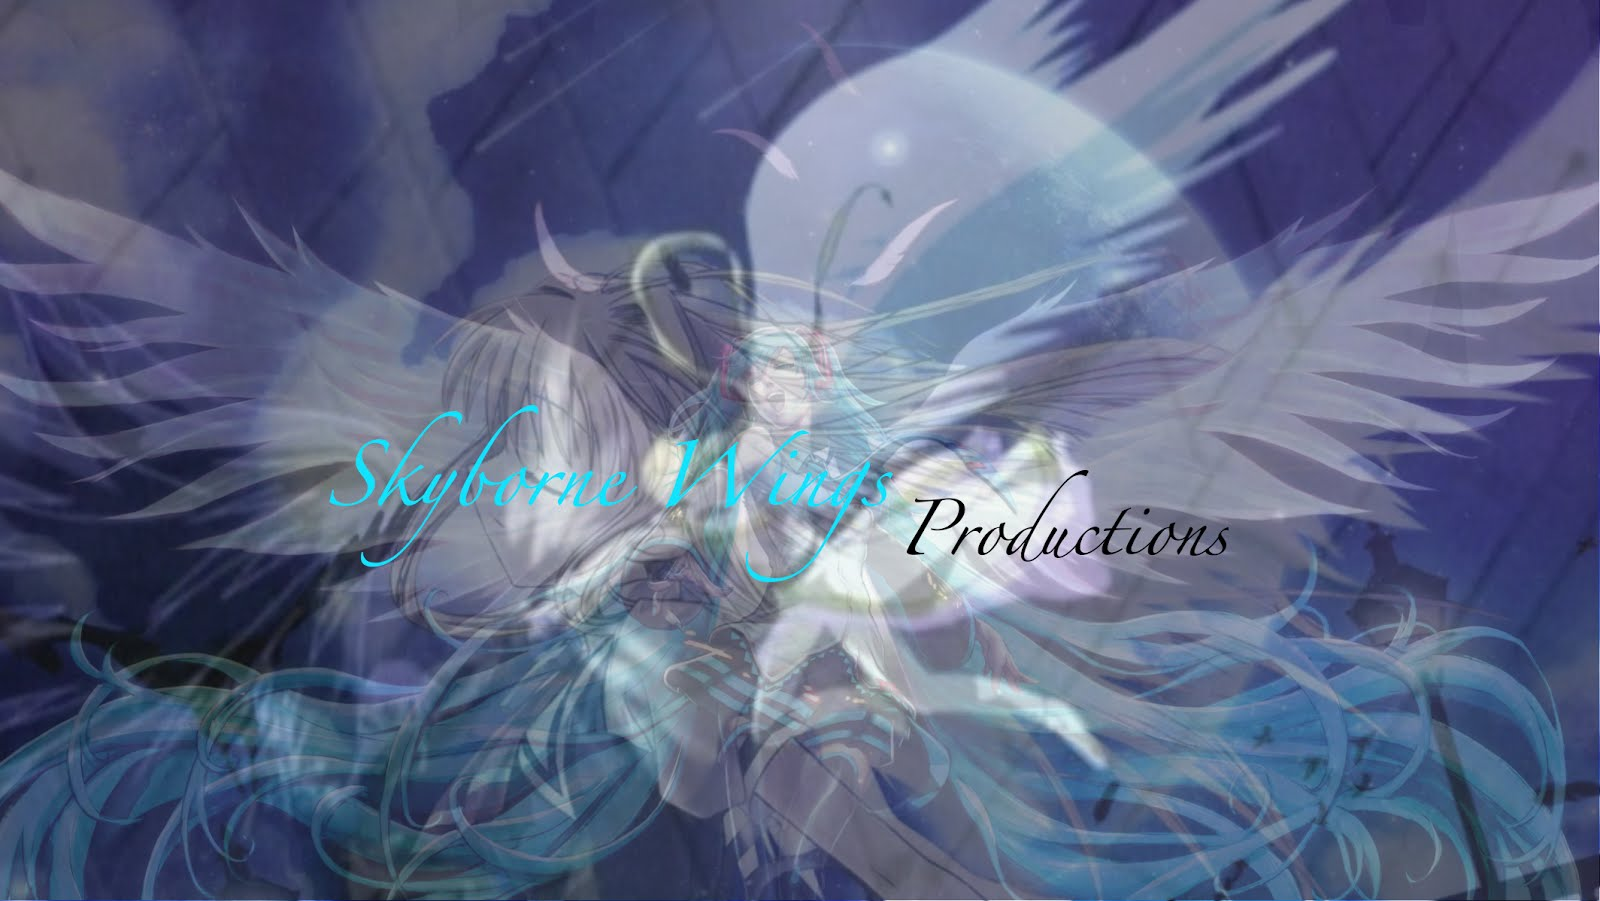 Skyborne Wings Productions